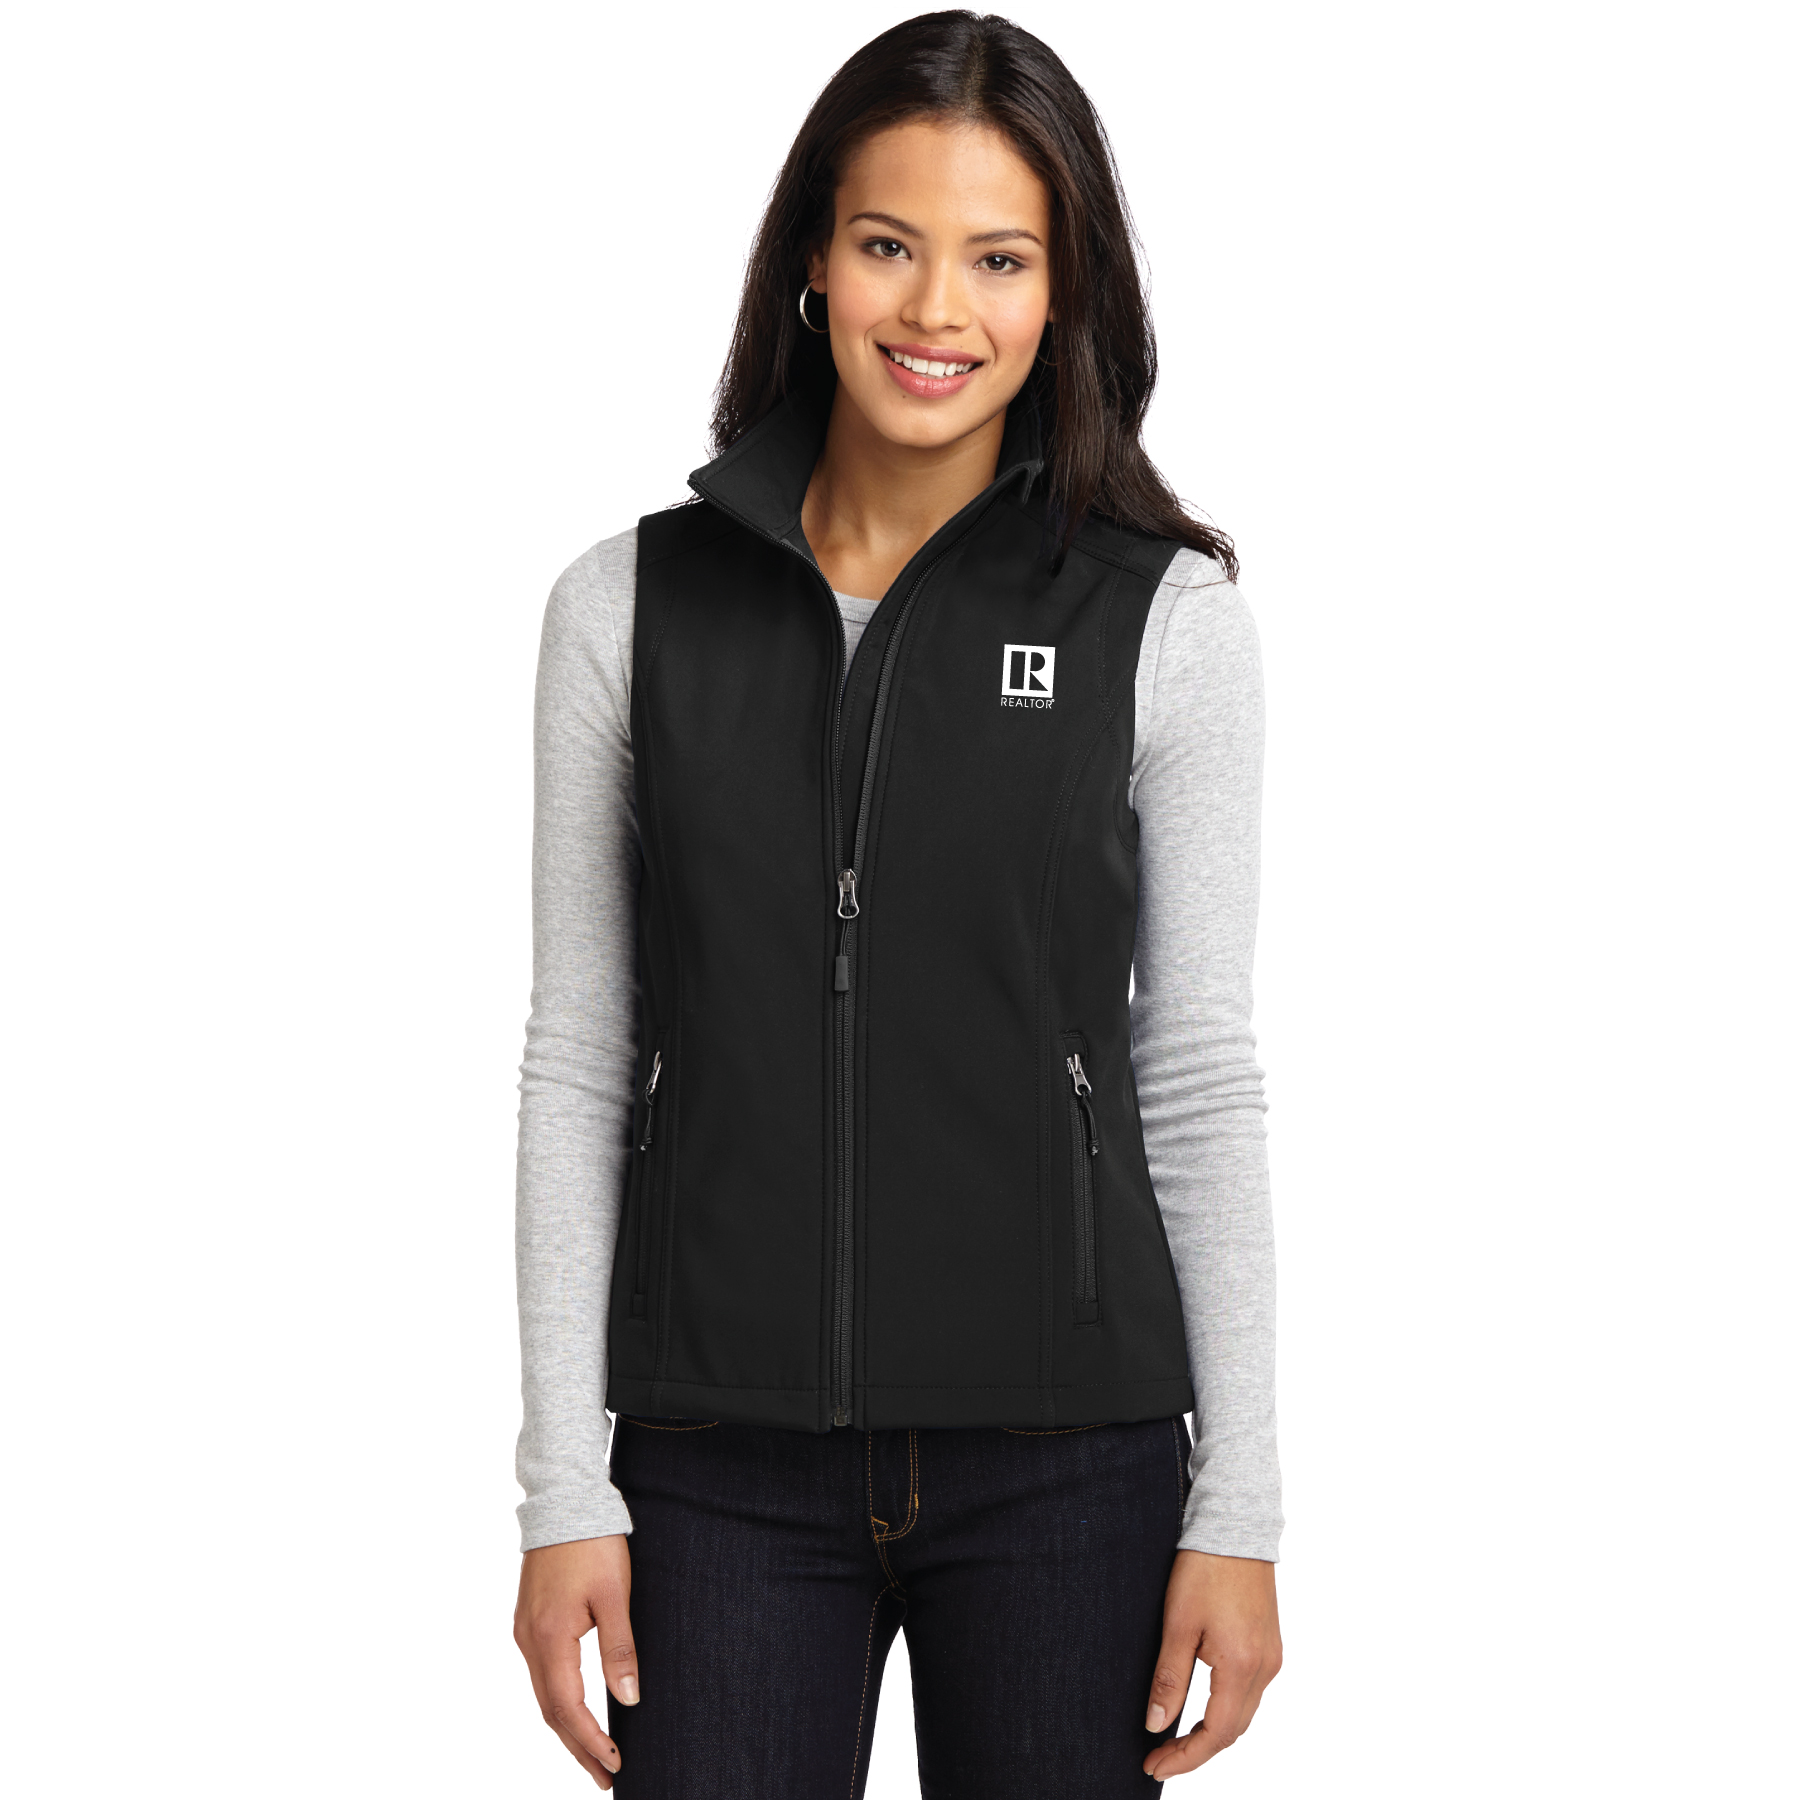 Ladies Core Soft Shell Vest ladies, soft, shells, vests